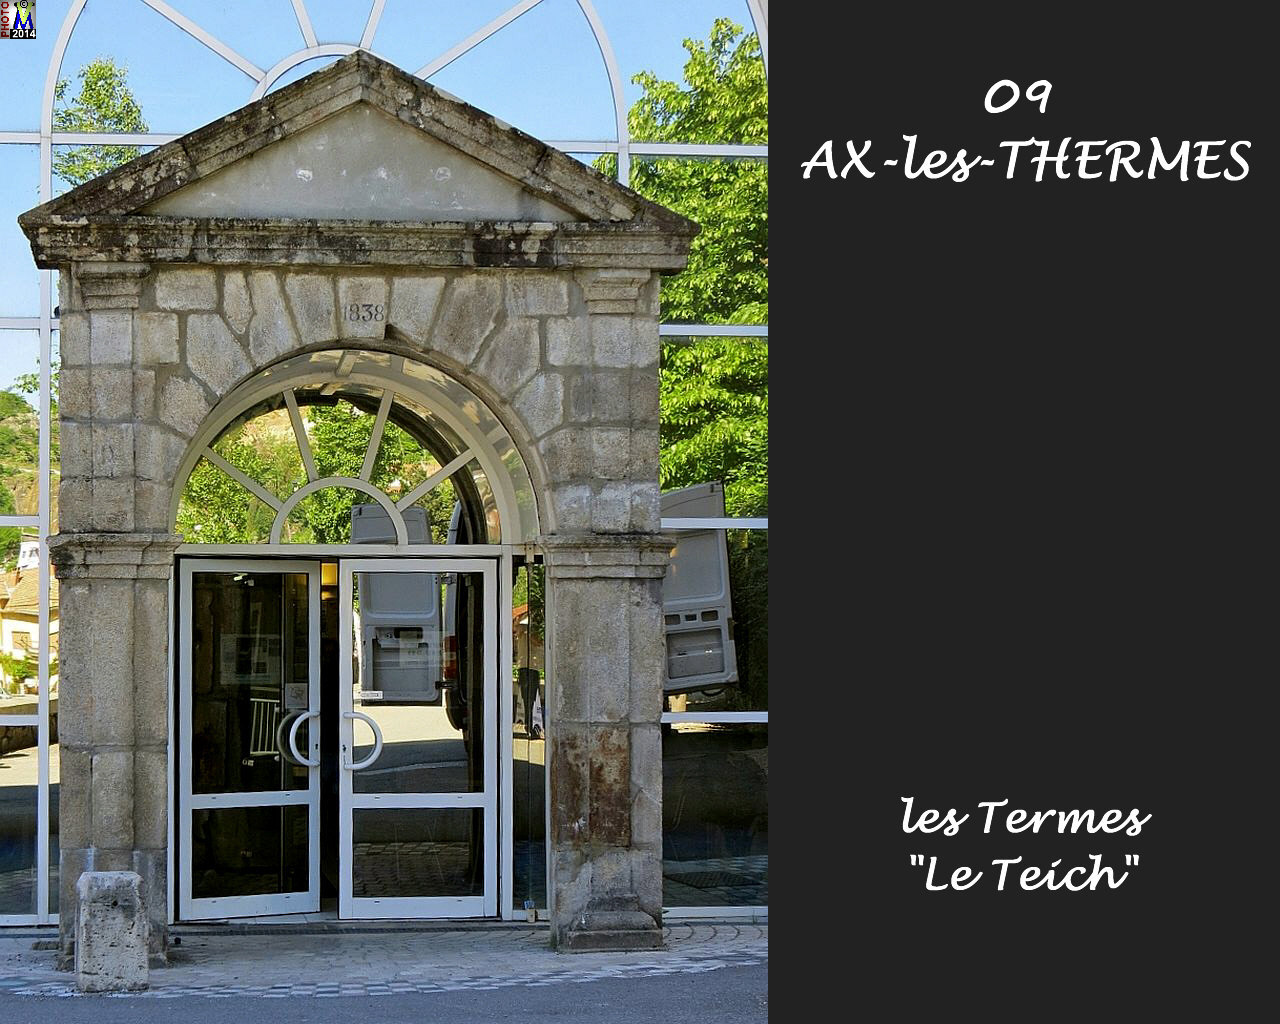 09AX-THERMES_ThermesT_102.jpg